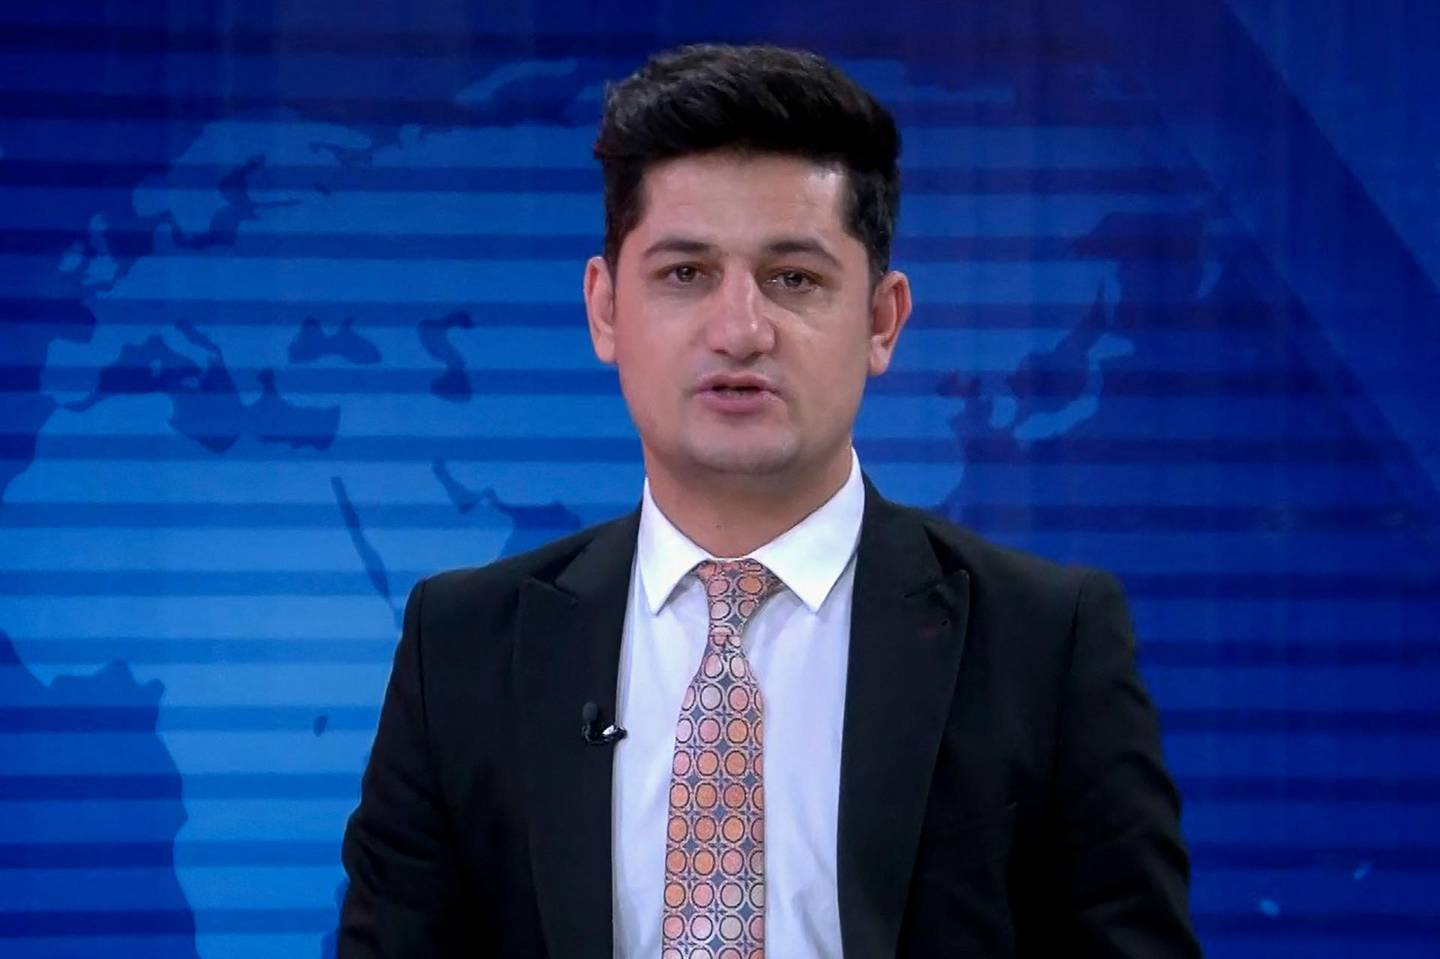 """In this unadated handout screengrab released by TOLOnews television journalist Nemat Rawan is seen during a news broadcast of ToloNews channel. A high-profile Afghan television journalist was shot dead in southern Kandahar city on May 6, officials said, a day after the Taliban warned against """"biased reporting"""" by the media. - RESTRICTED TO EDITORIAL USE - MANDATORY CREDIT """"AFP PHOTO /TOLOnews"""" - NO MARKETING - NO ADVERTISING CAMPAIGNS - DISTRIBUTED AS A SERVICE TO CLIENTS    / AFP / TOLONEWS / - / RESTRICTED TO EDITORIAL USE - MANDATORY CREDIT """"AFP PHOTO /TOLOnews"""" - NO MARKETING - NO ADVERTISING CAMPAIGNS - DISTRIBUTED AS A SERVICE TO CLIENTS"""